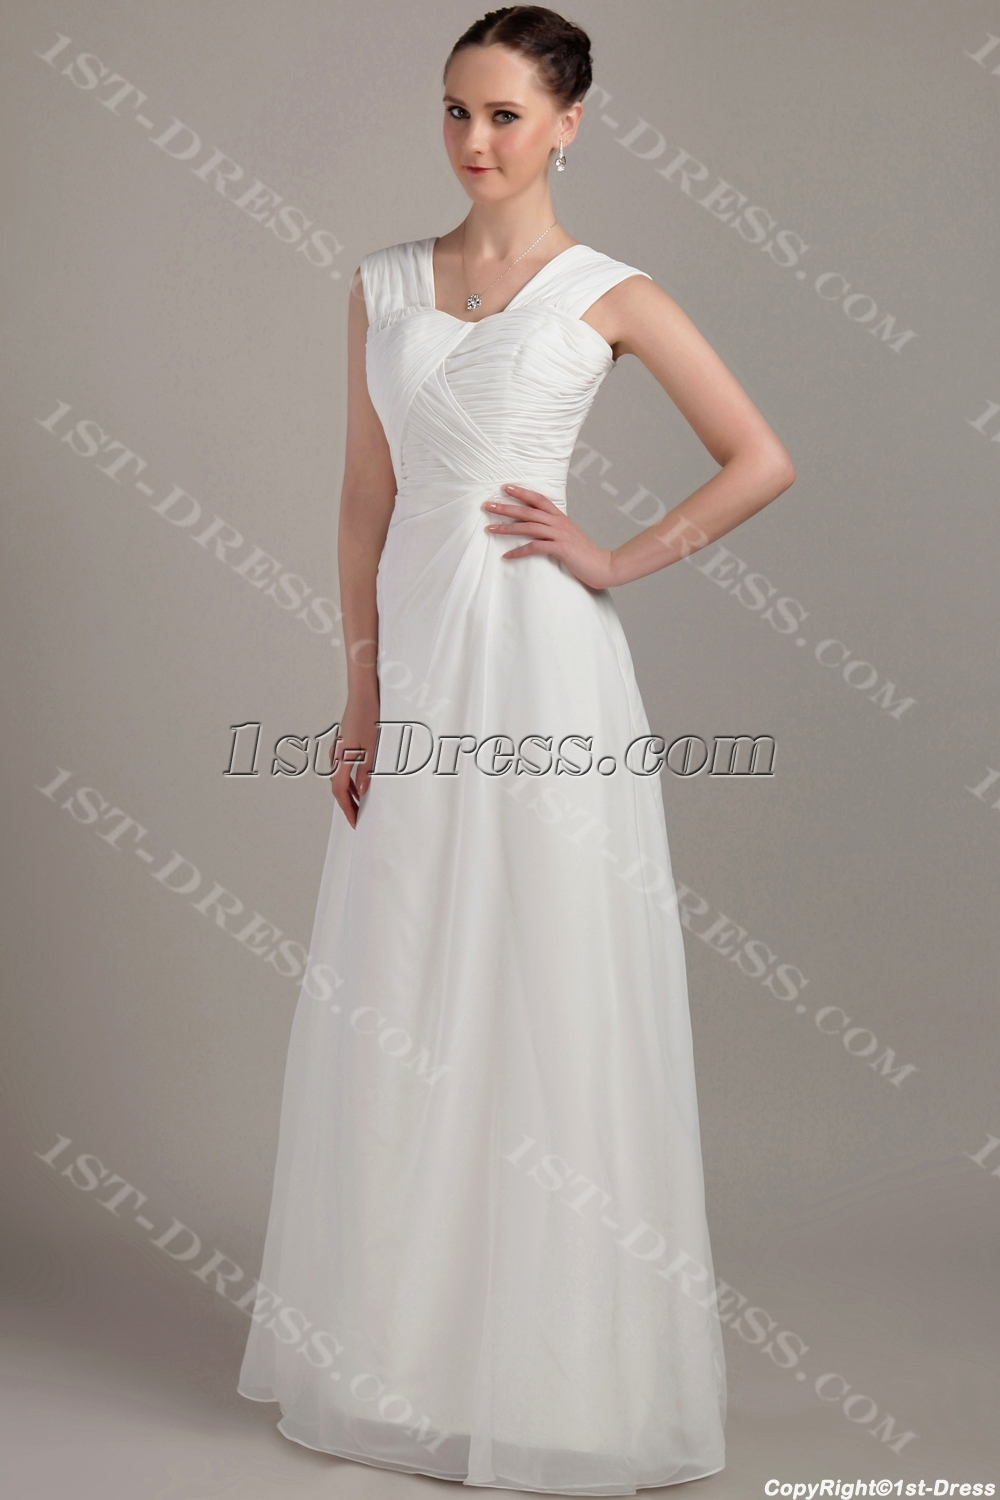 images/201304/big/Beautiful-White-Long-Junior-Prom-Dress-IMG_3297-1065-b-1-1366196326.jpg